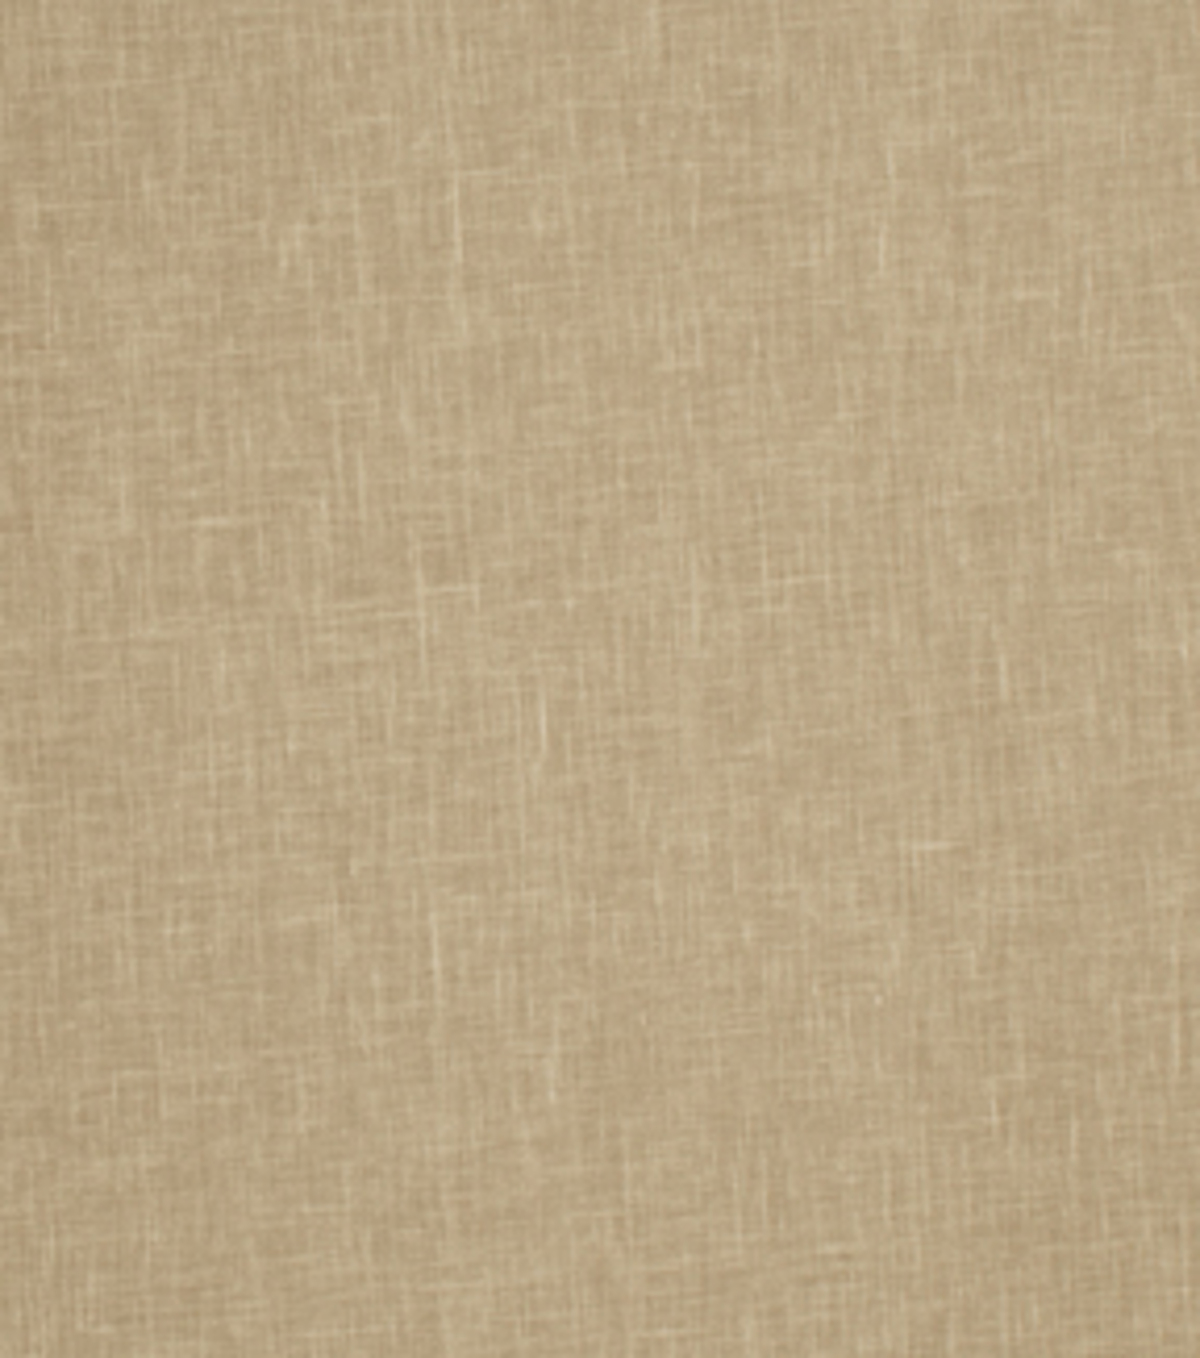 Home Decor 8\u0022x8\u0022 Fabric Swatch-Eaton Square Bannister Linen